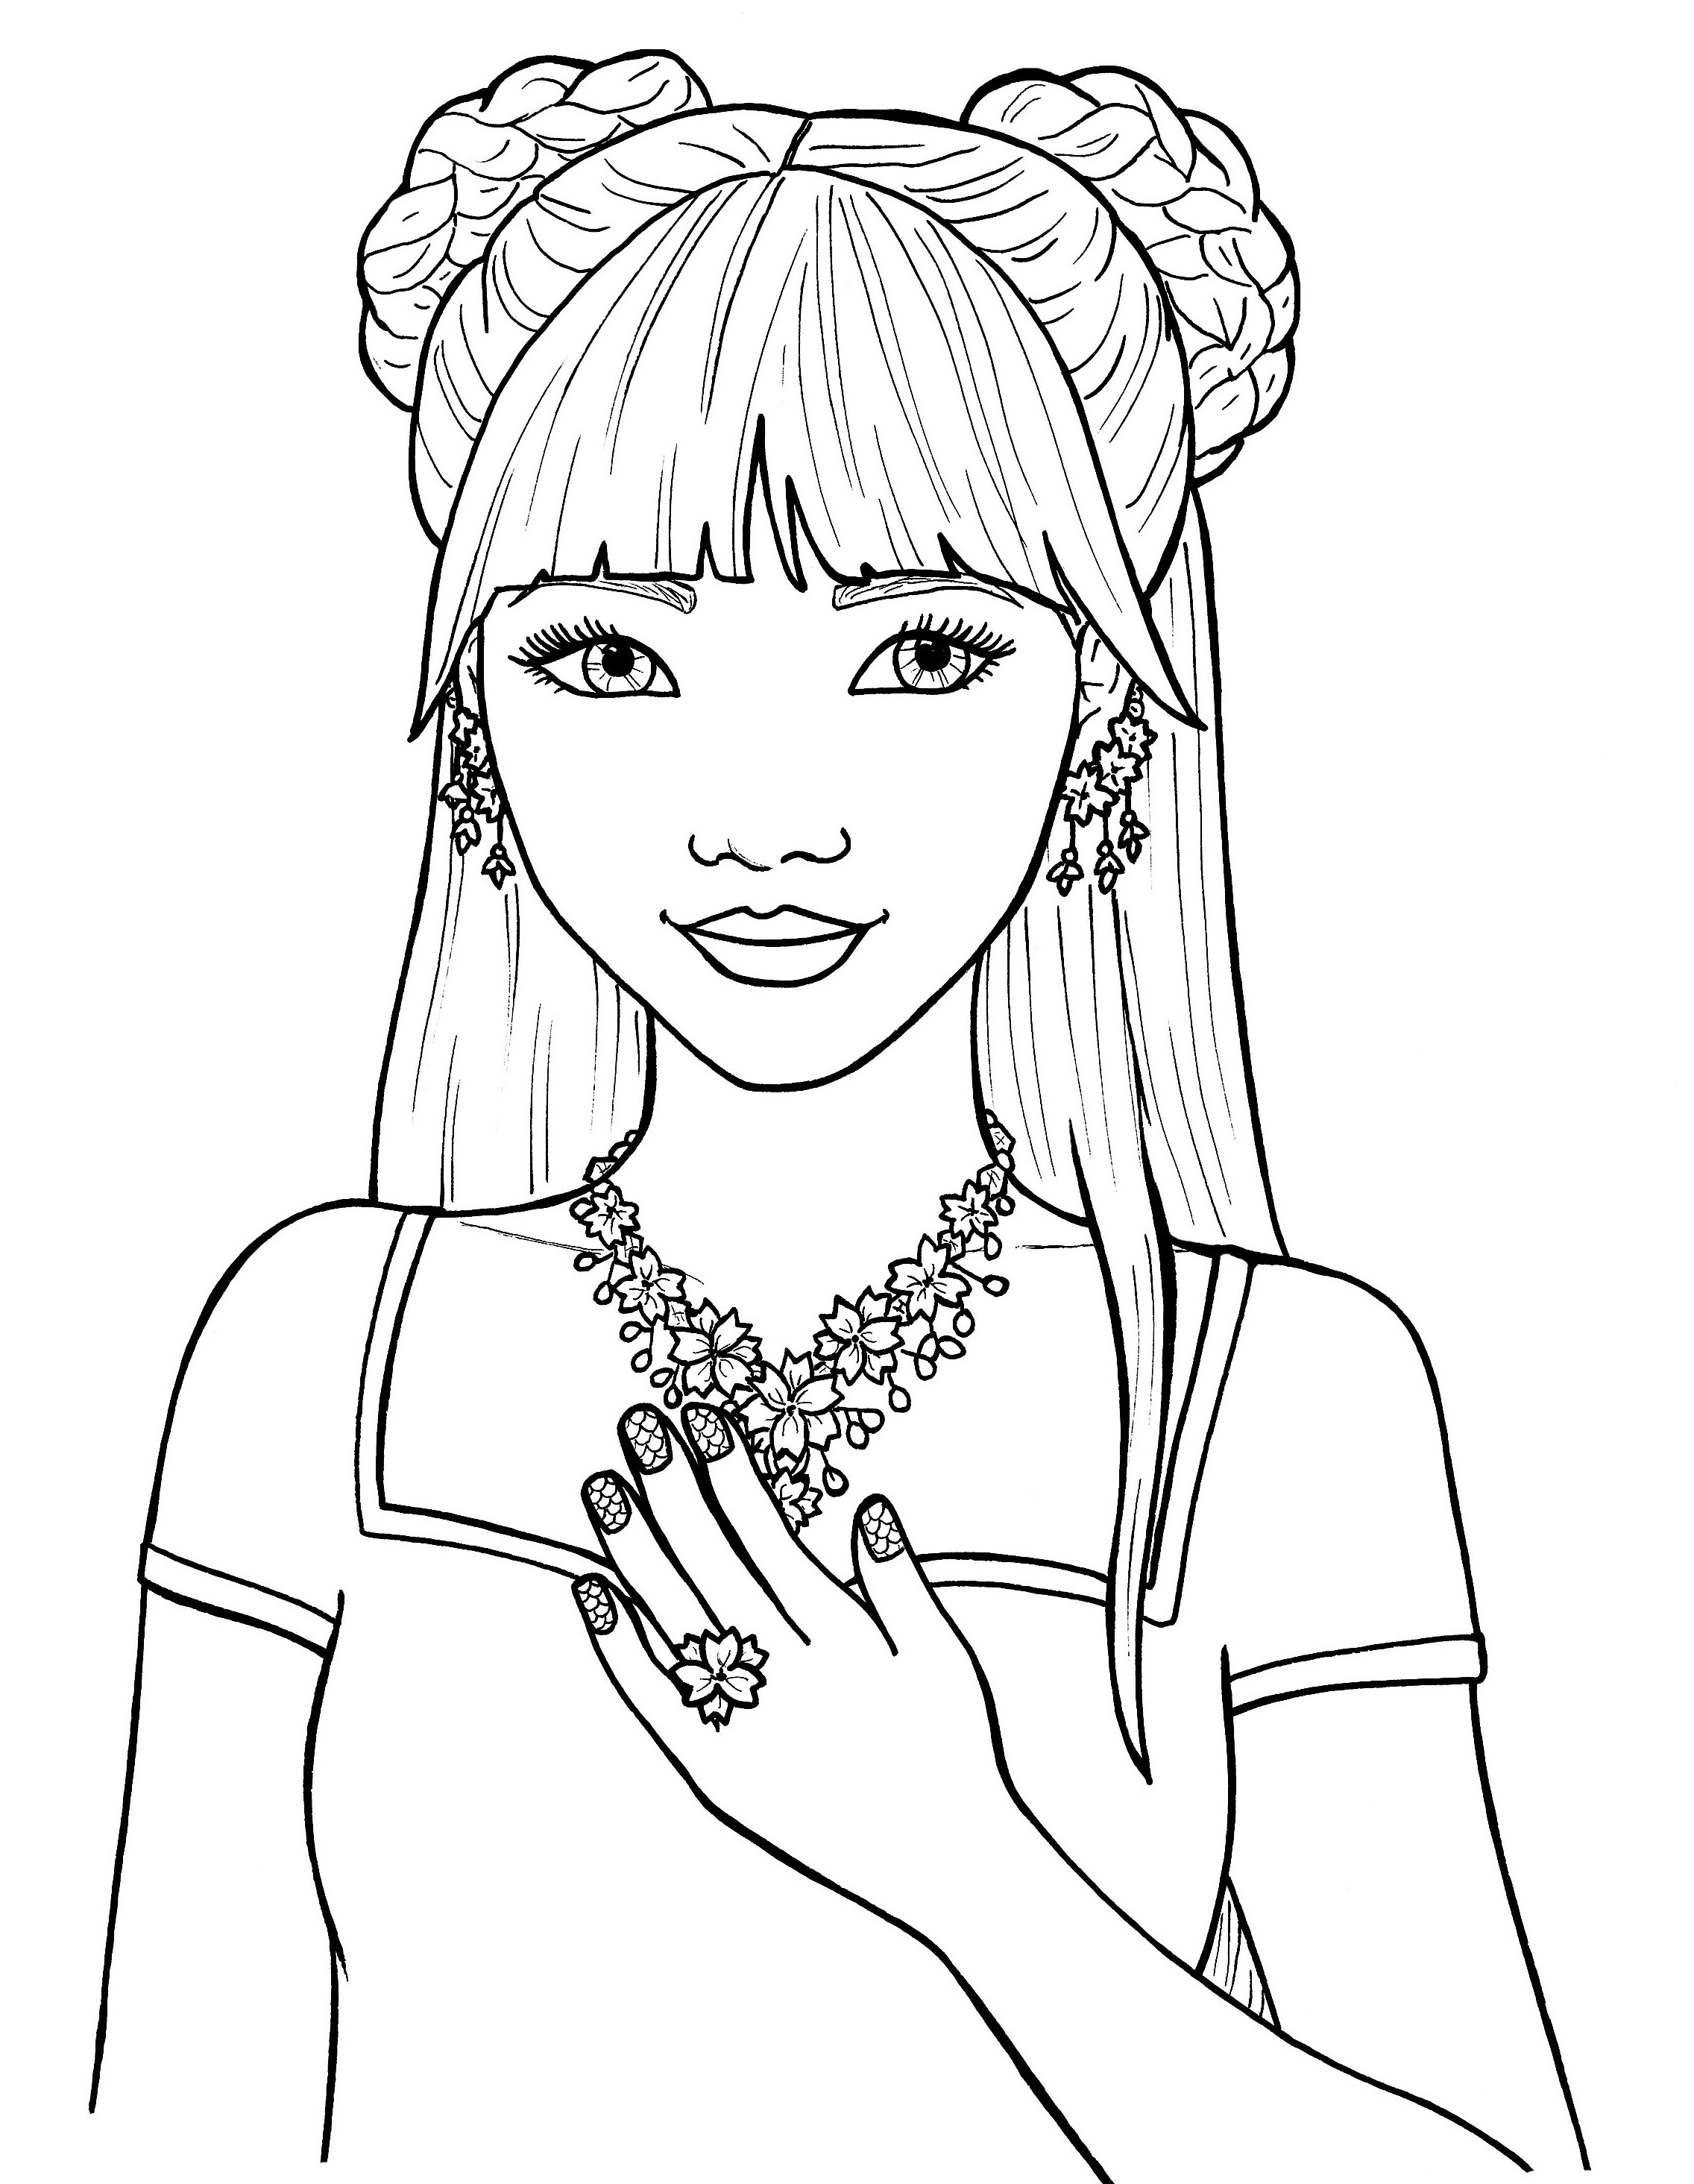 coloring pages of little girls cute little girl coloring pages at getcoloringscom free little coloring of girls pages